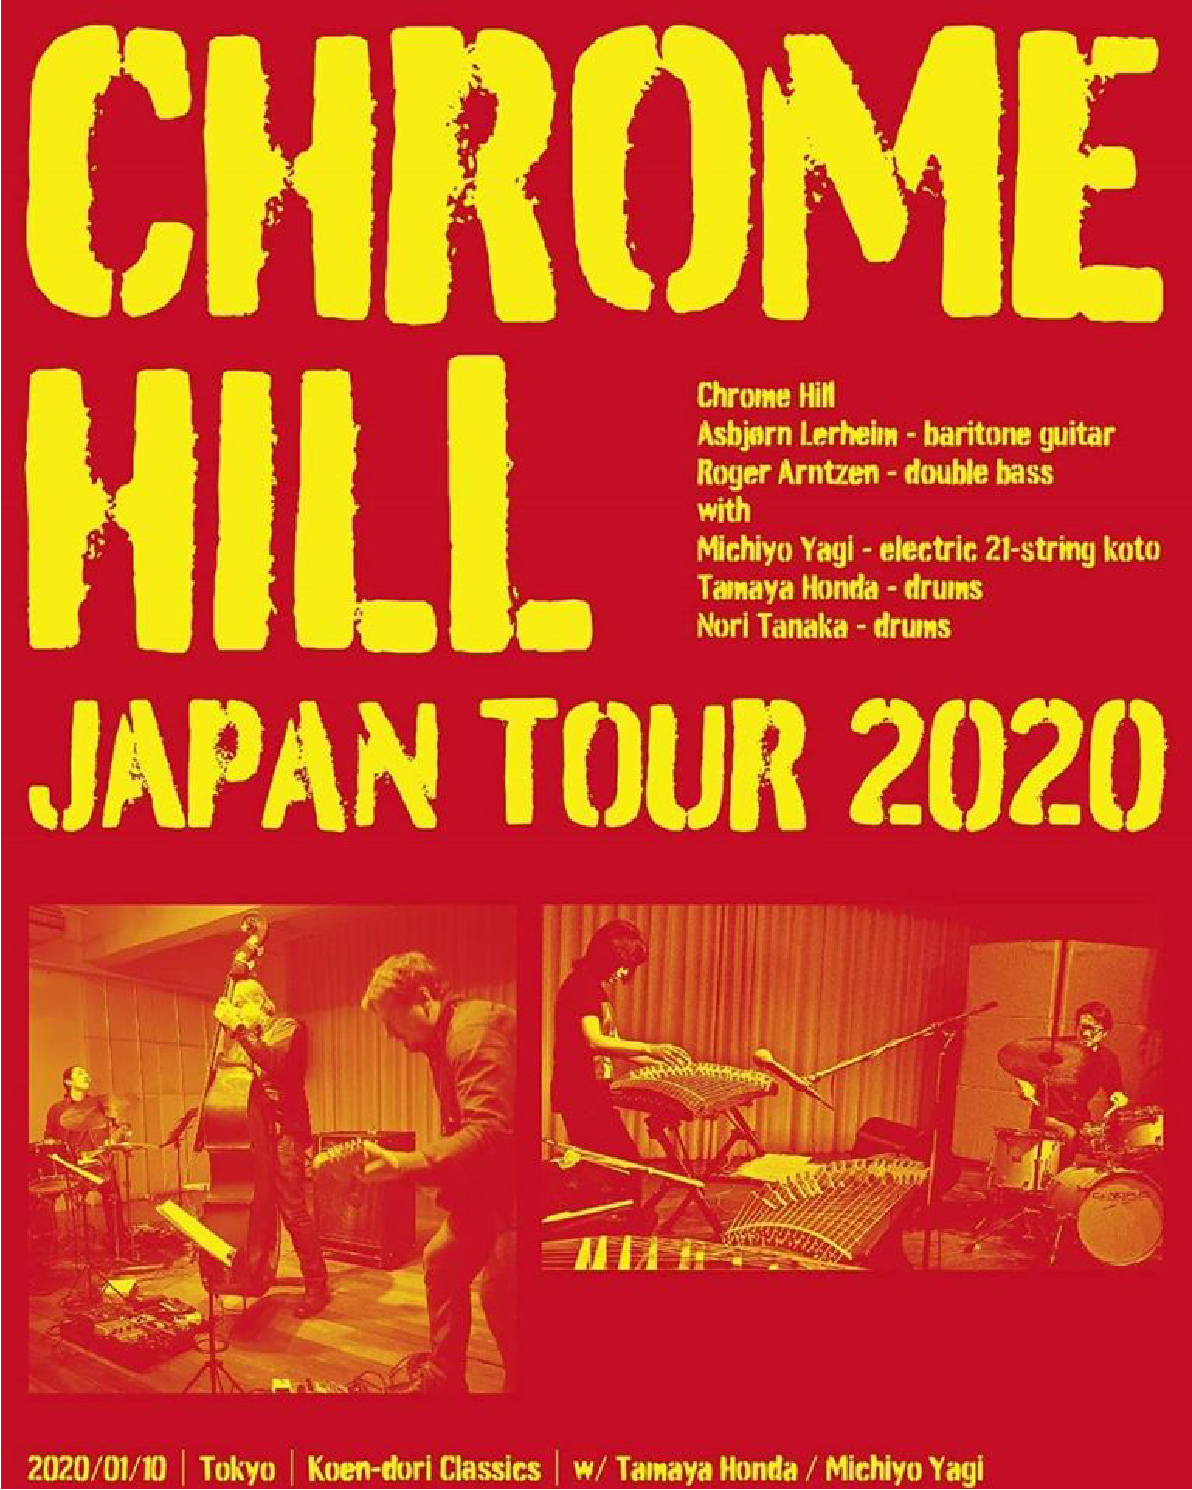 Chrome Hill Japan Tour in 熊本 おくらチラシ1